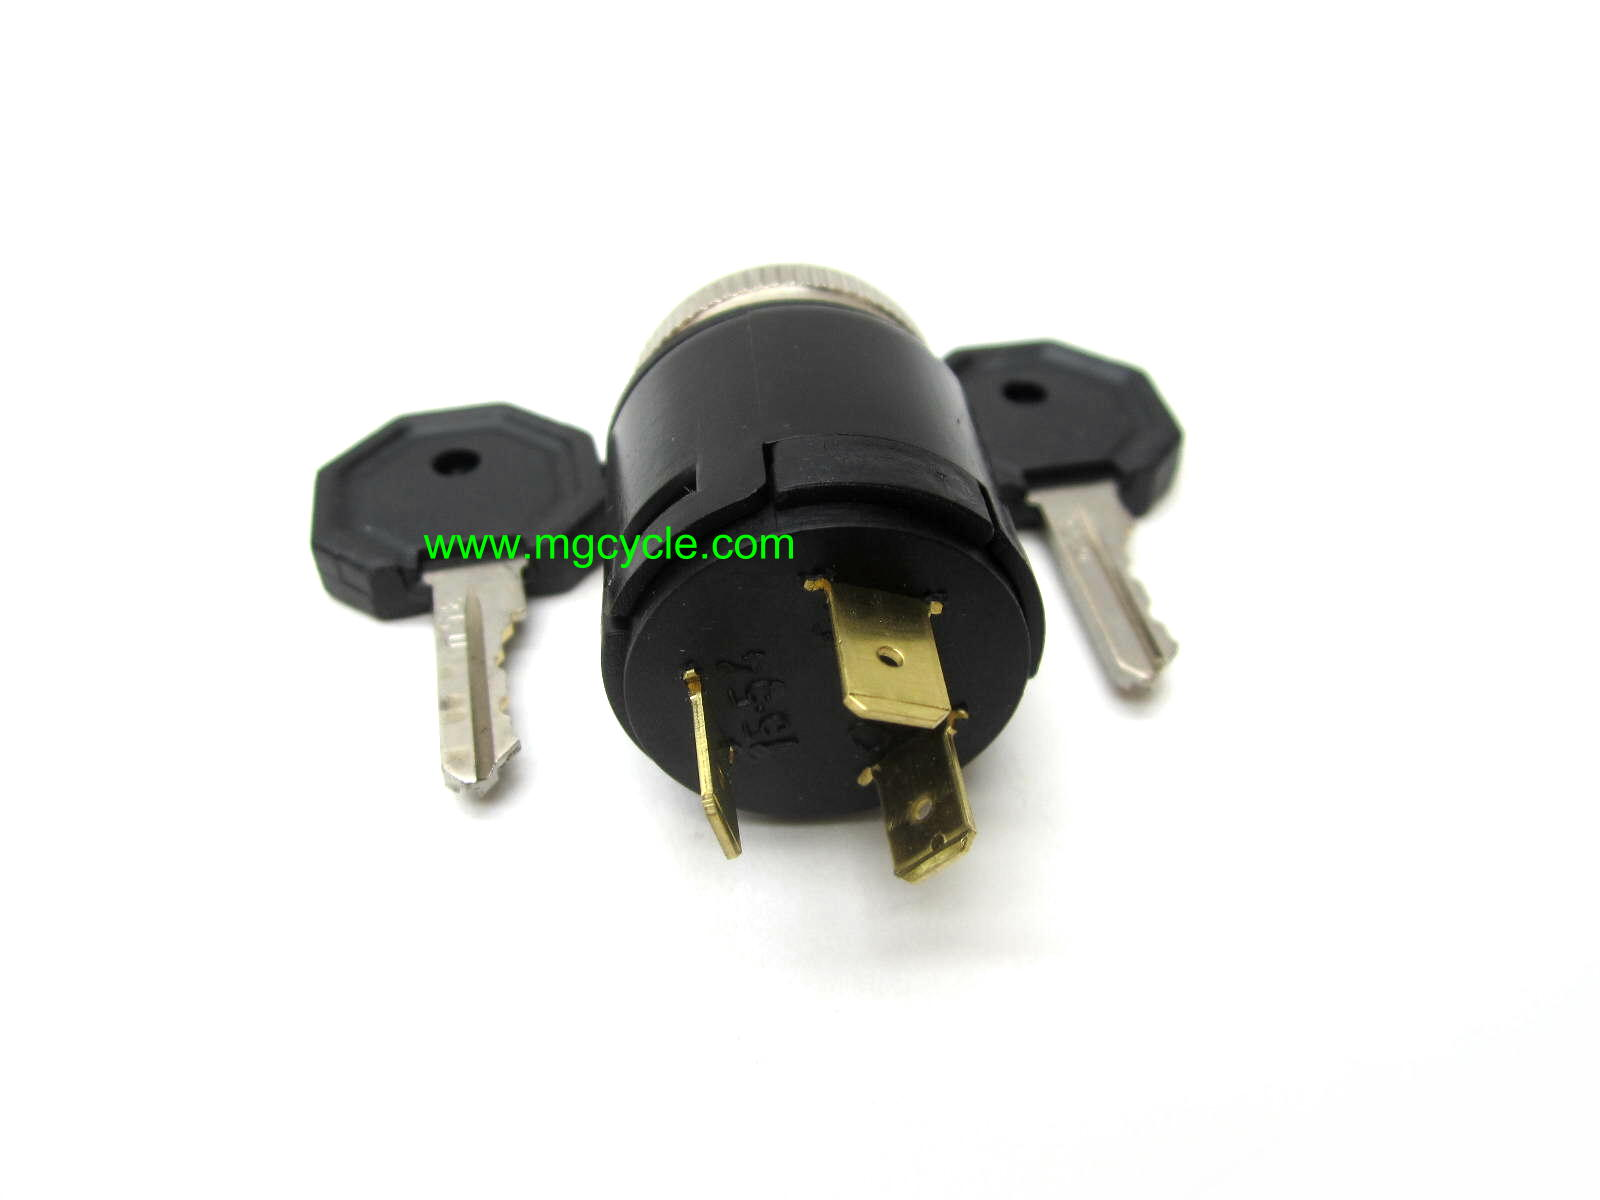 ignition switch, 3 wire, 2 position, Ducati bevel heads